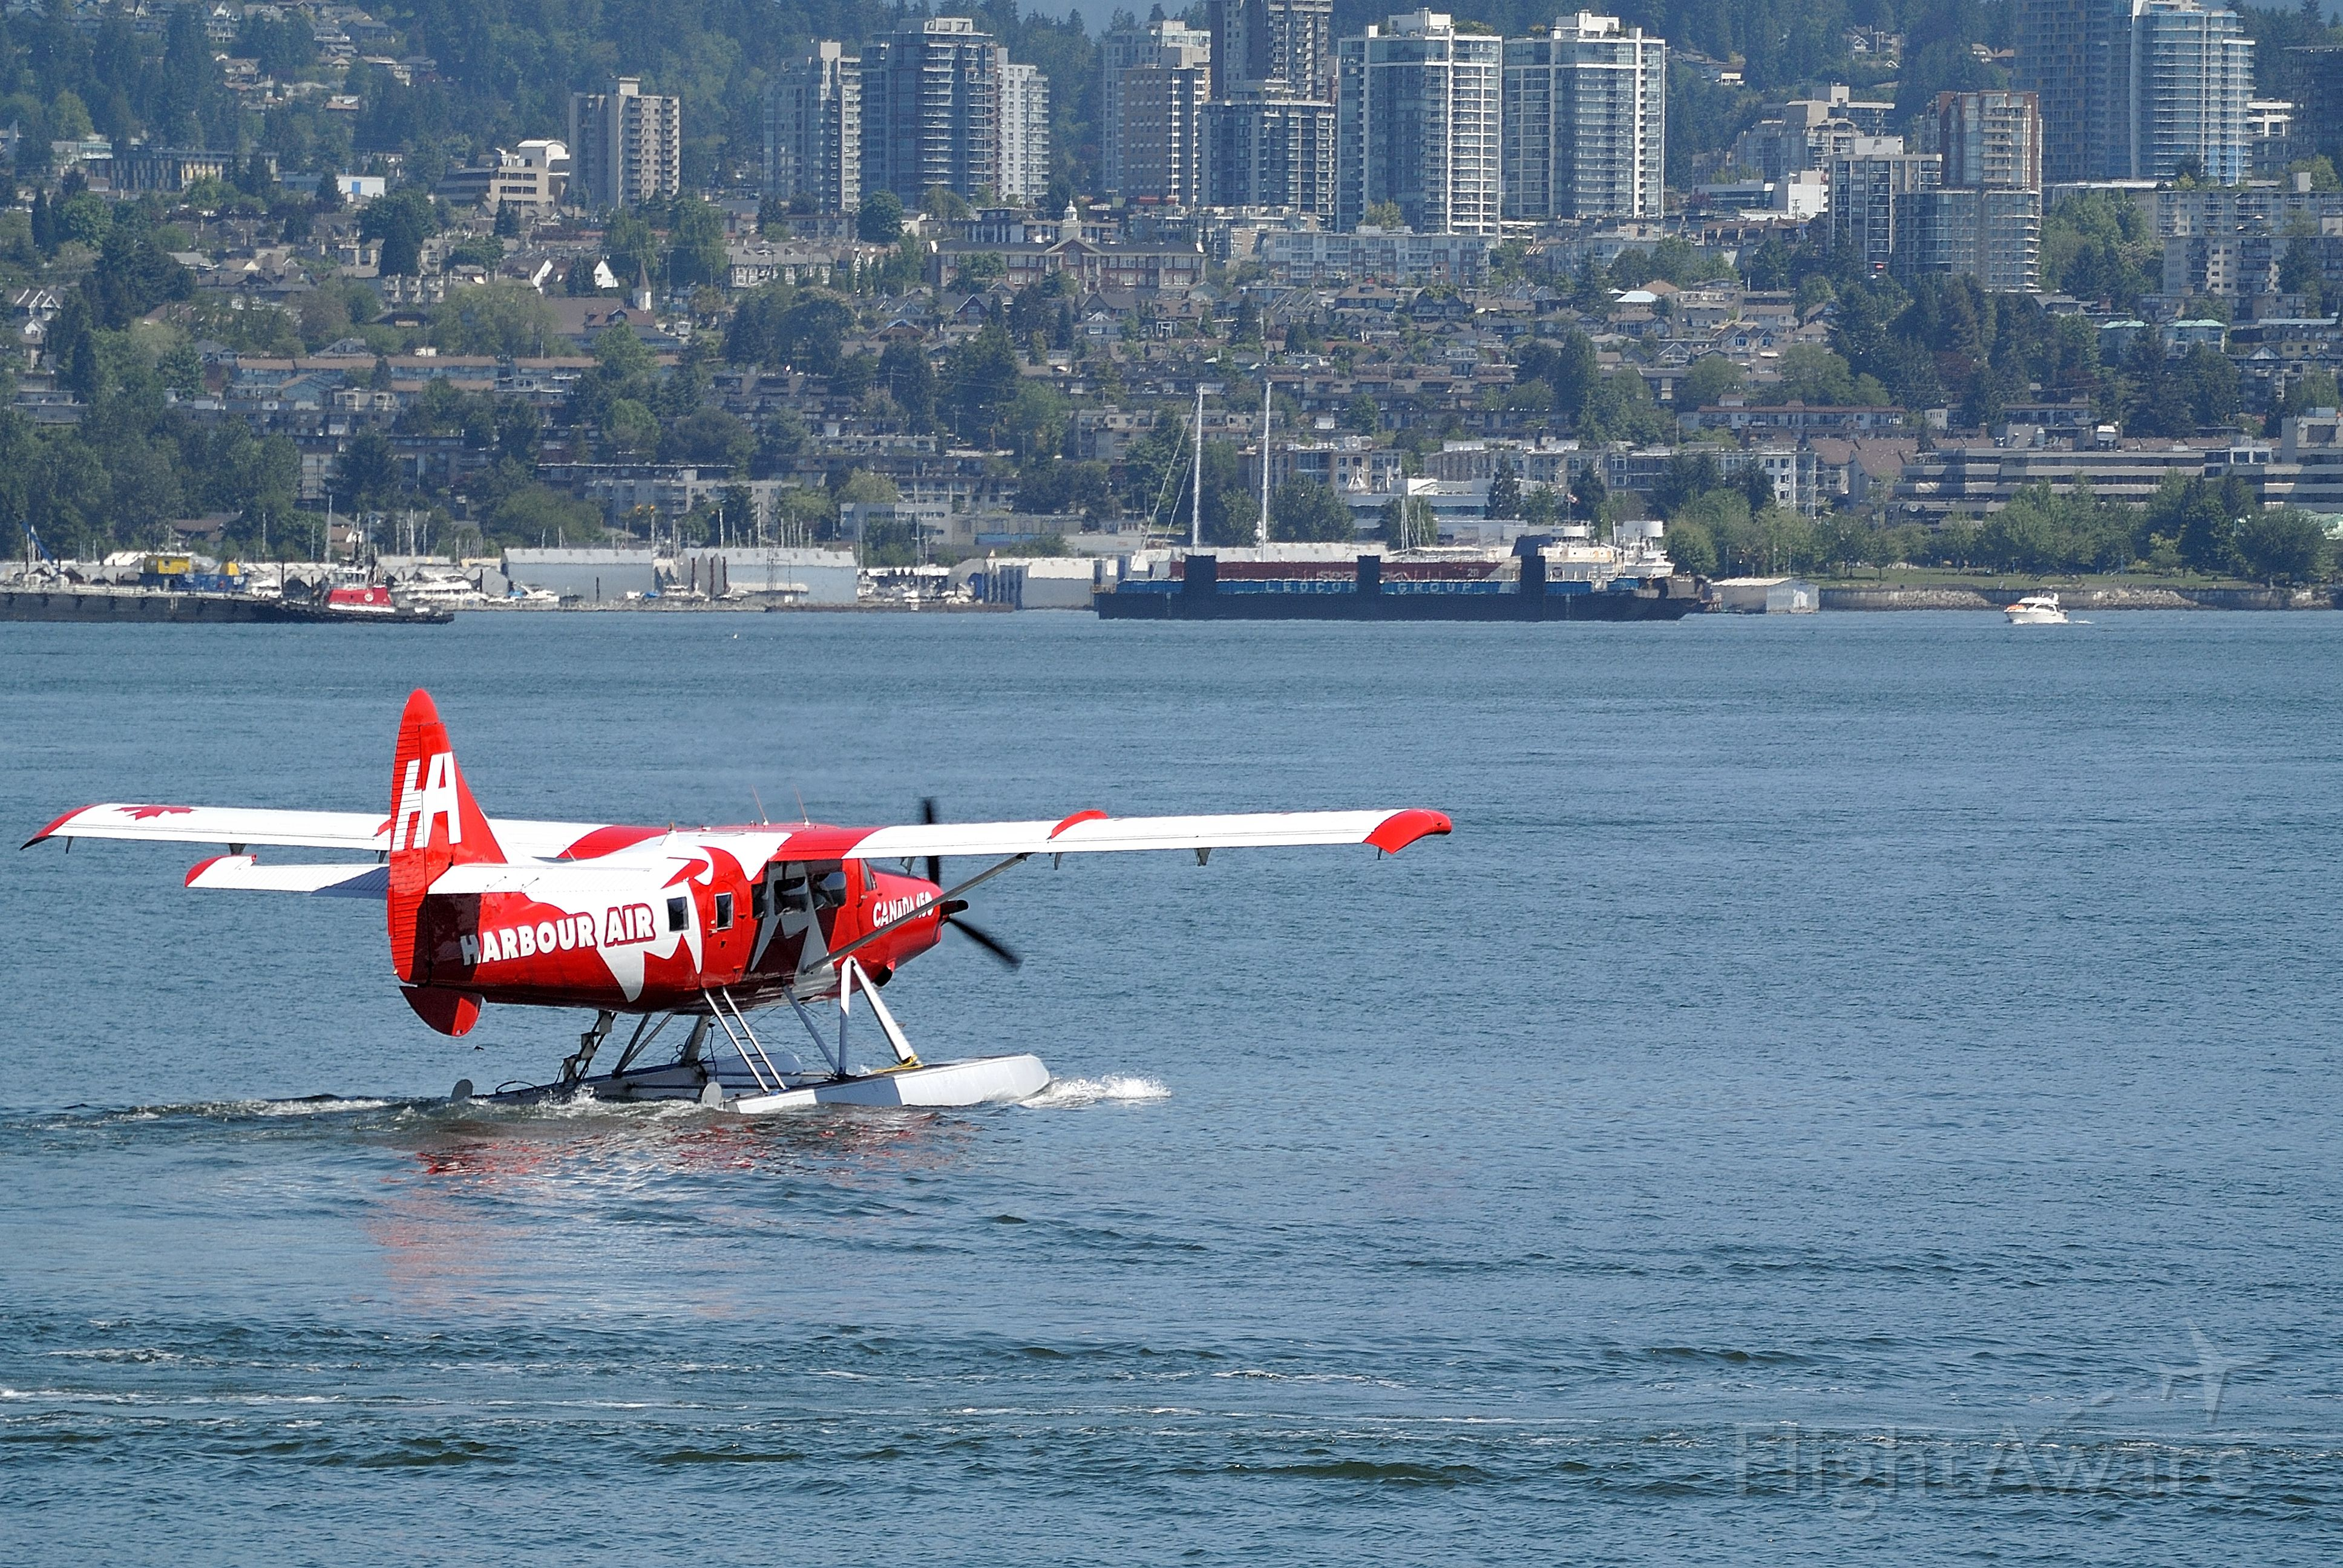 De Havilland Canada DHC-3 Otter (C-FODH) - In special livery to mark Canada